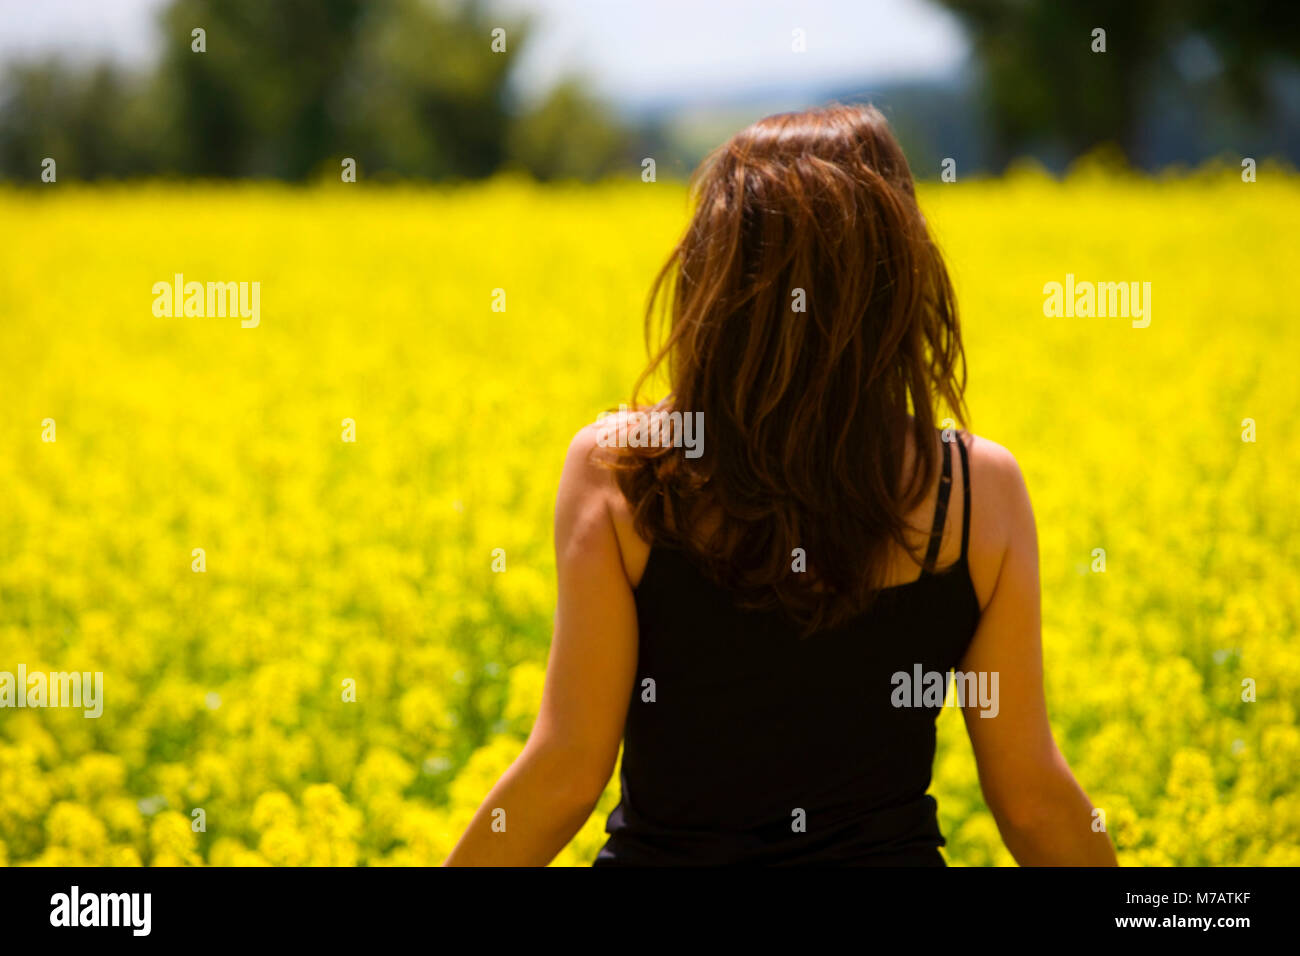 Rear view of a young woman standing in a field, Czech Republic - Stock Image